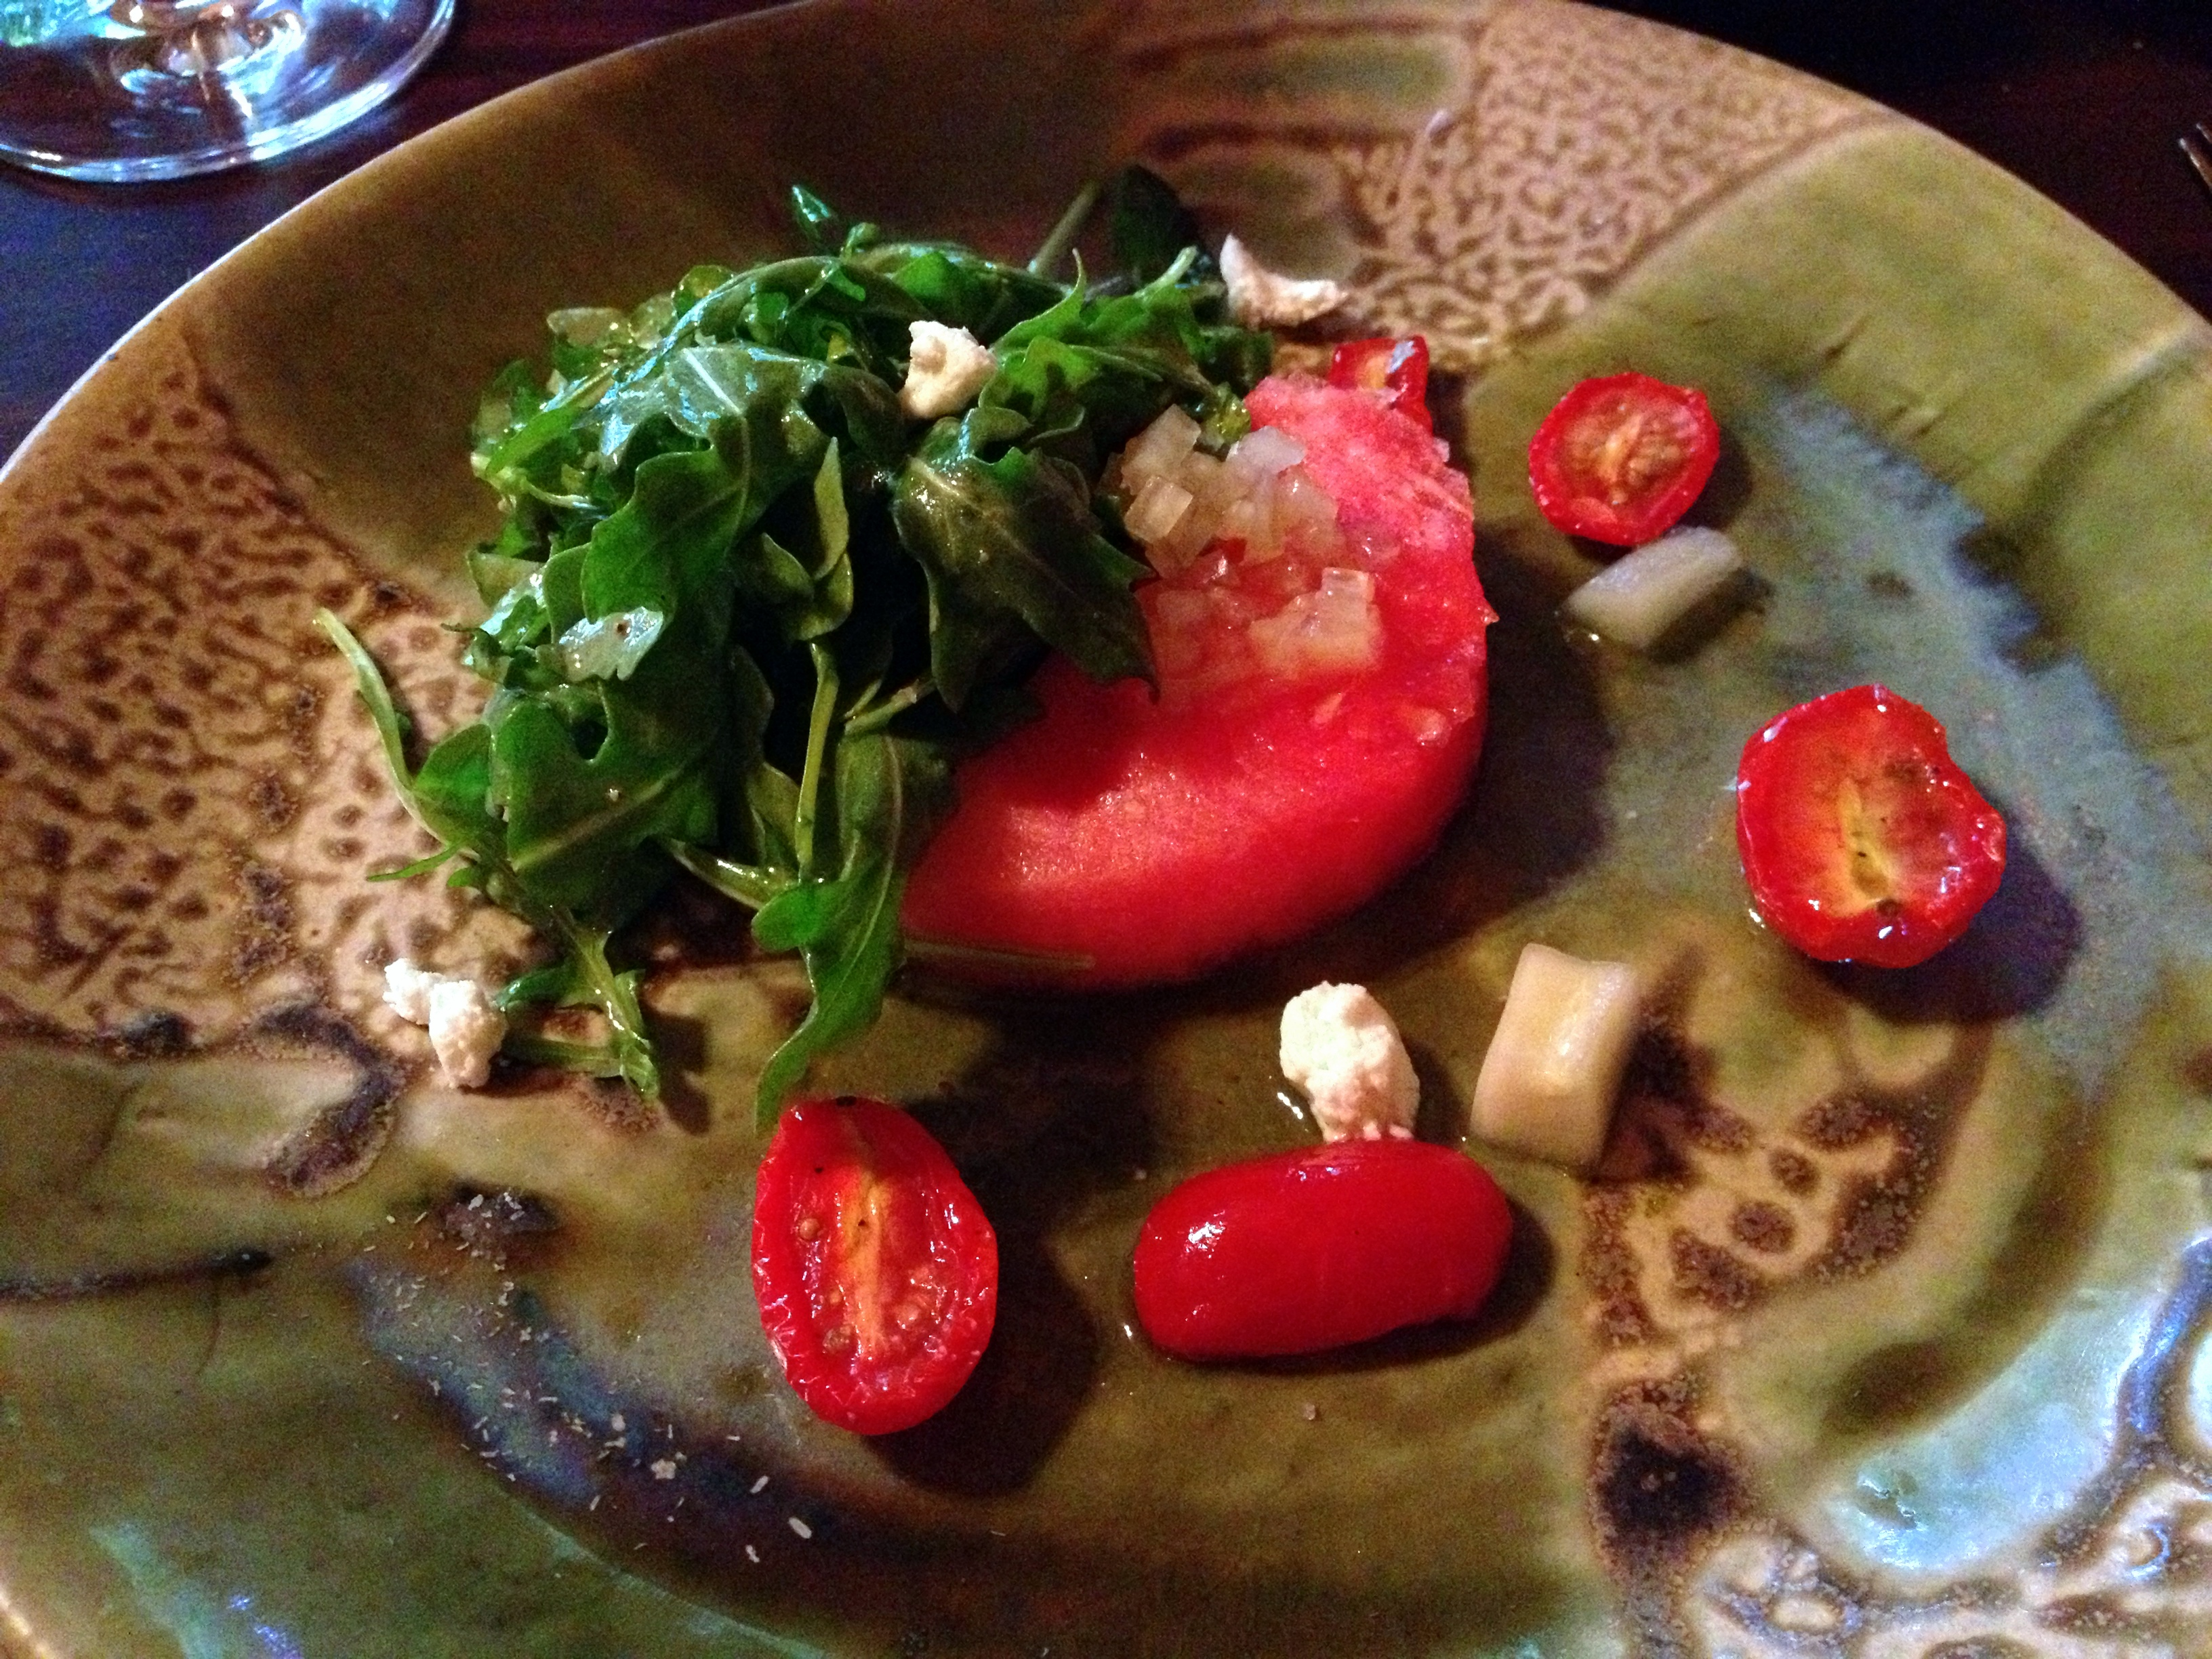 Watermelon salad with feta, cucumber and tomato